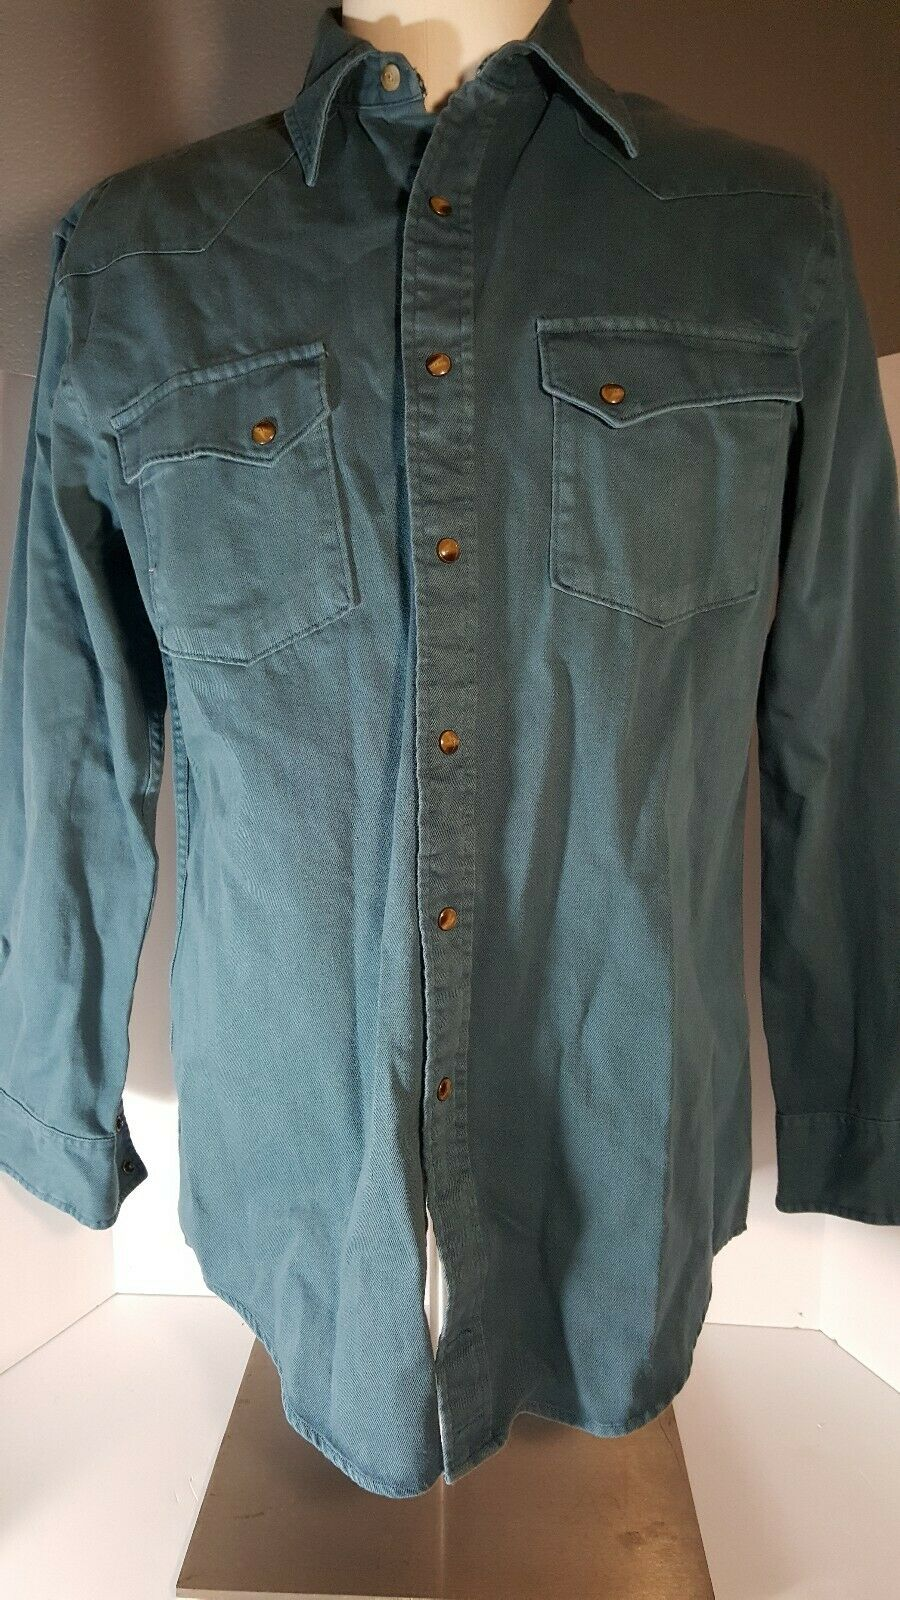 NWT Pendleton Laramie Mens S Teal Pearl Snap L S Western Heavy Cotton Shirt